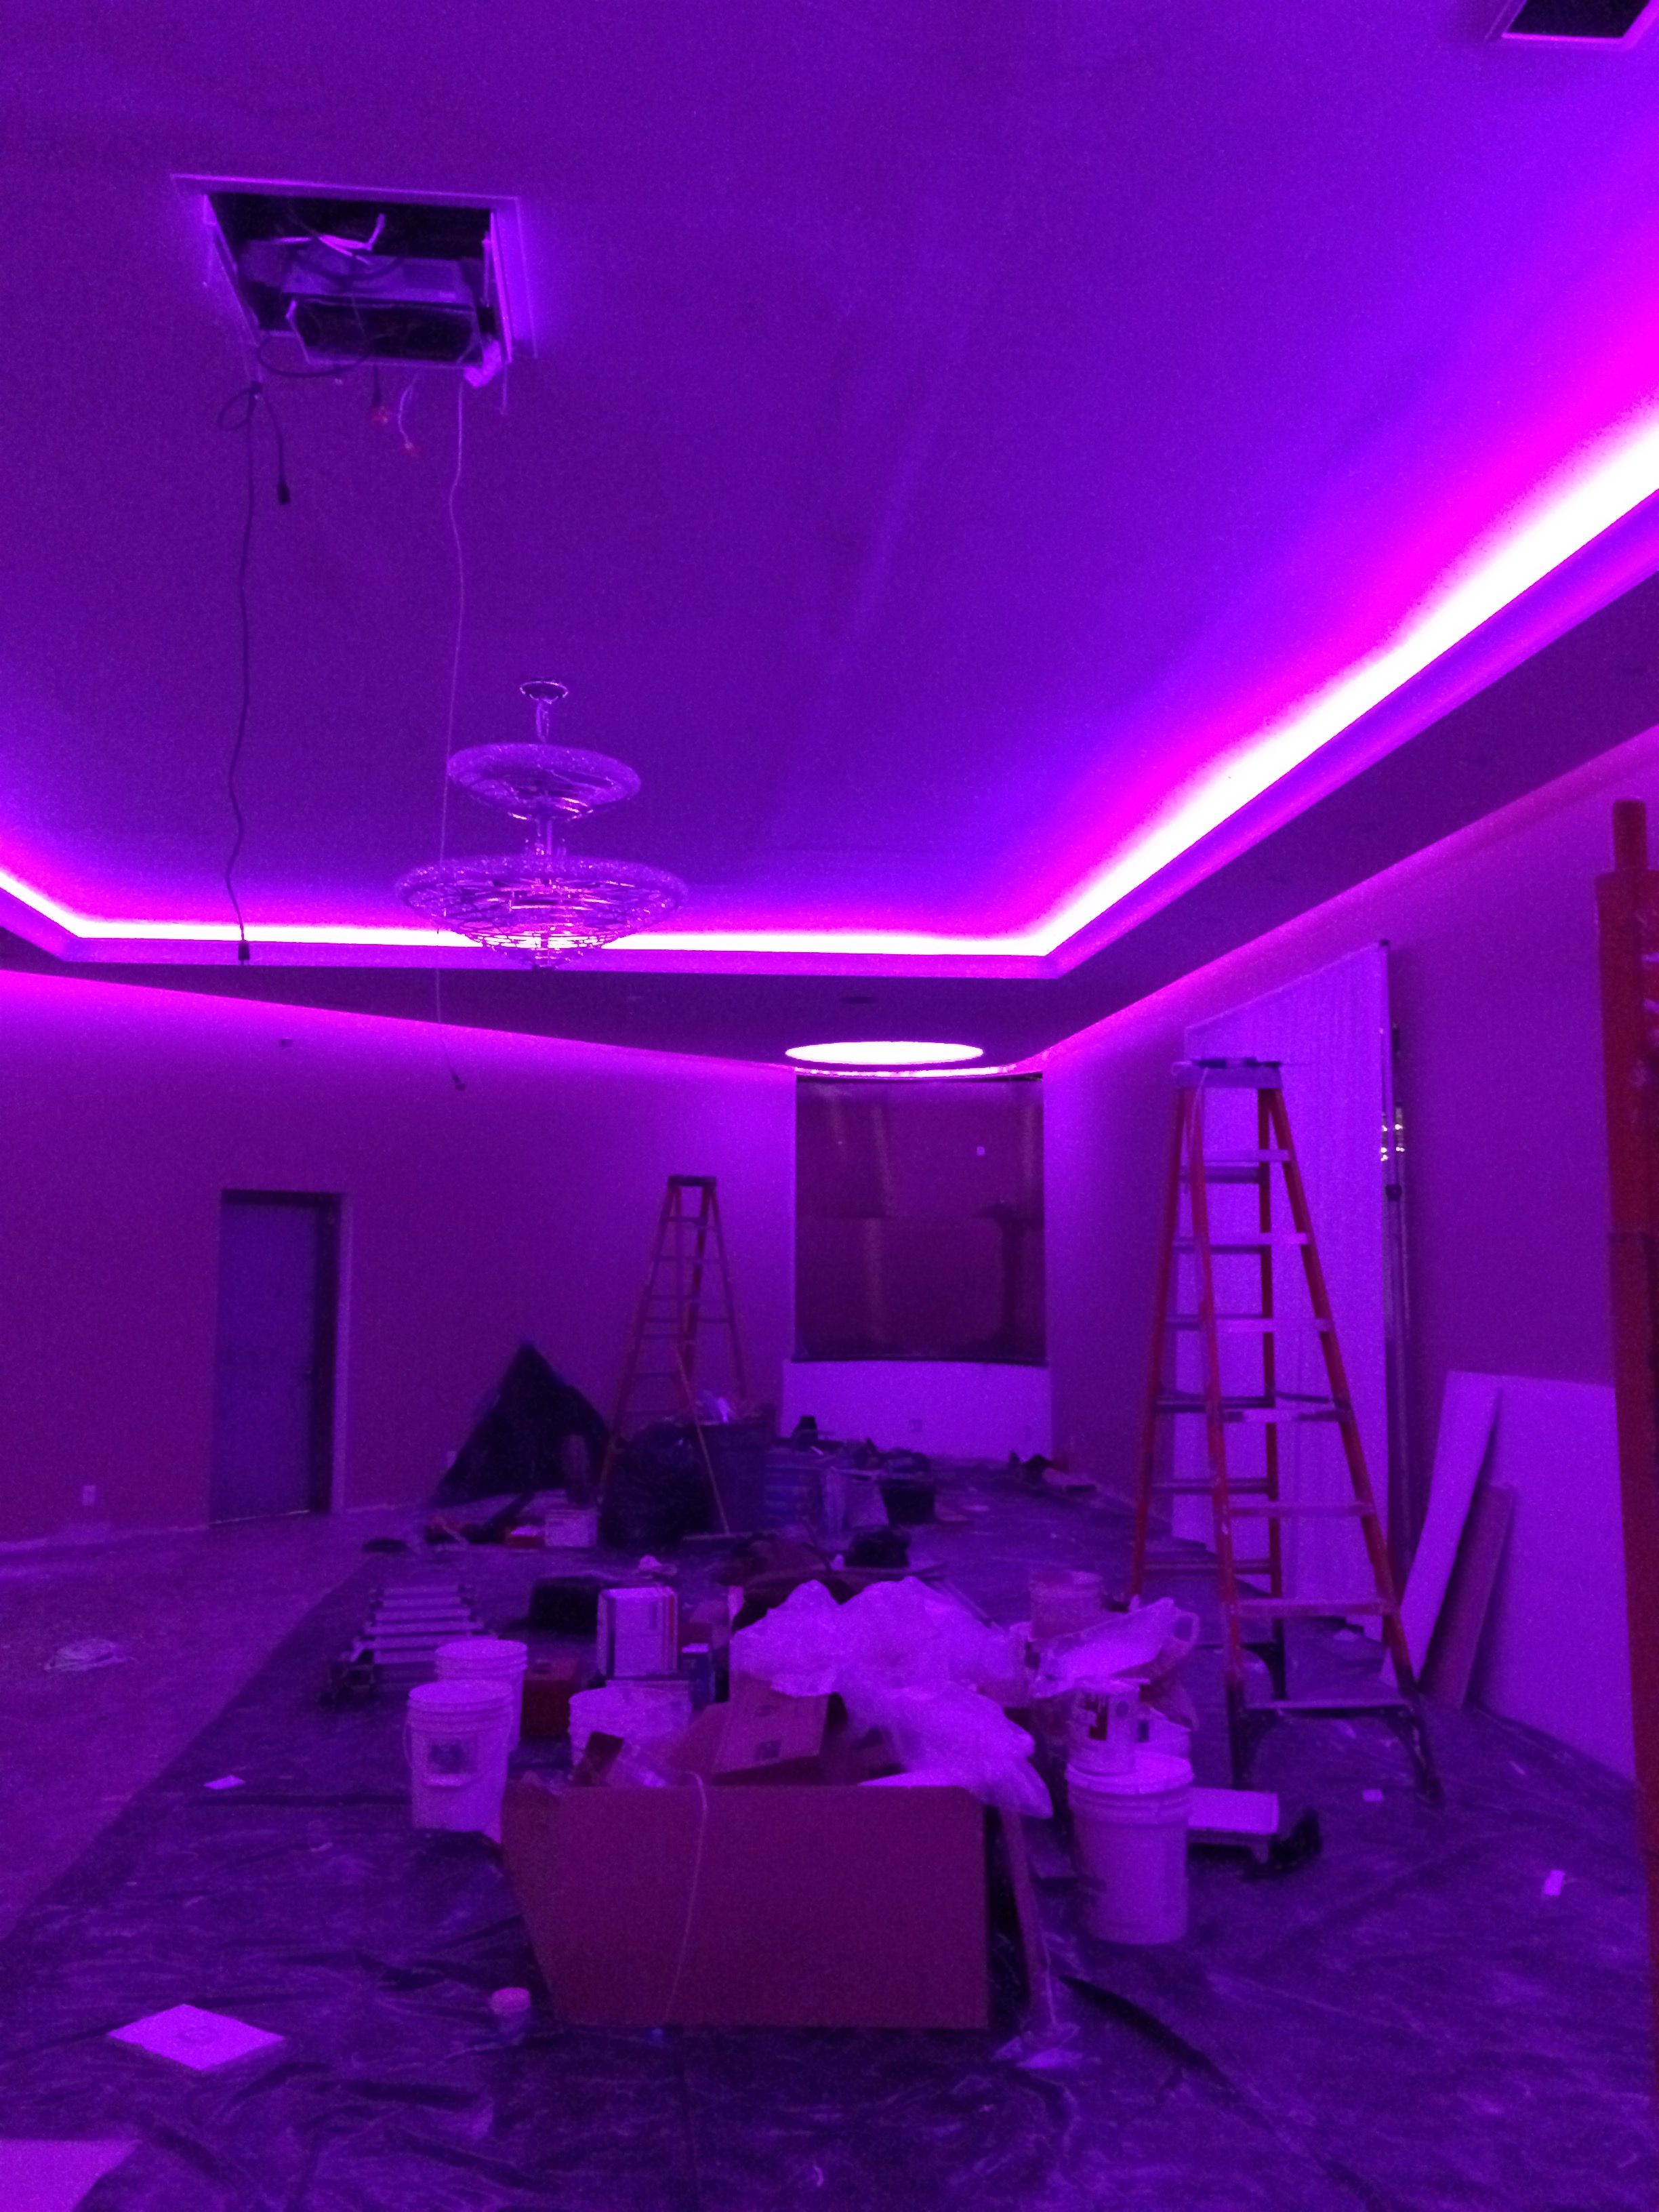 Led Tape In Soffet Millionillions Of Colors